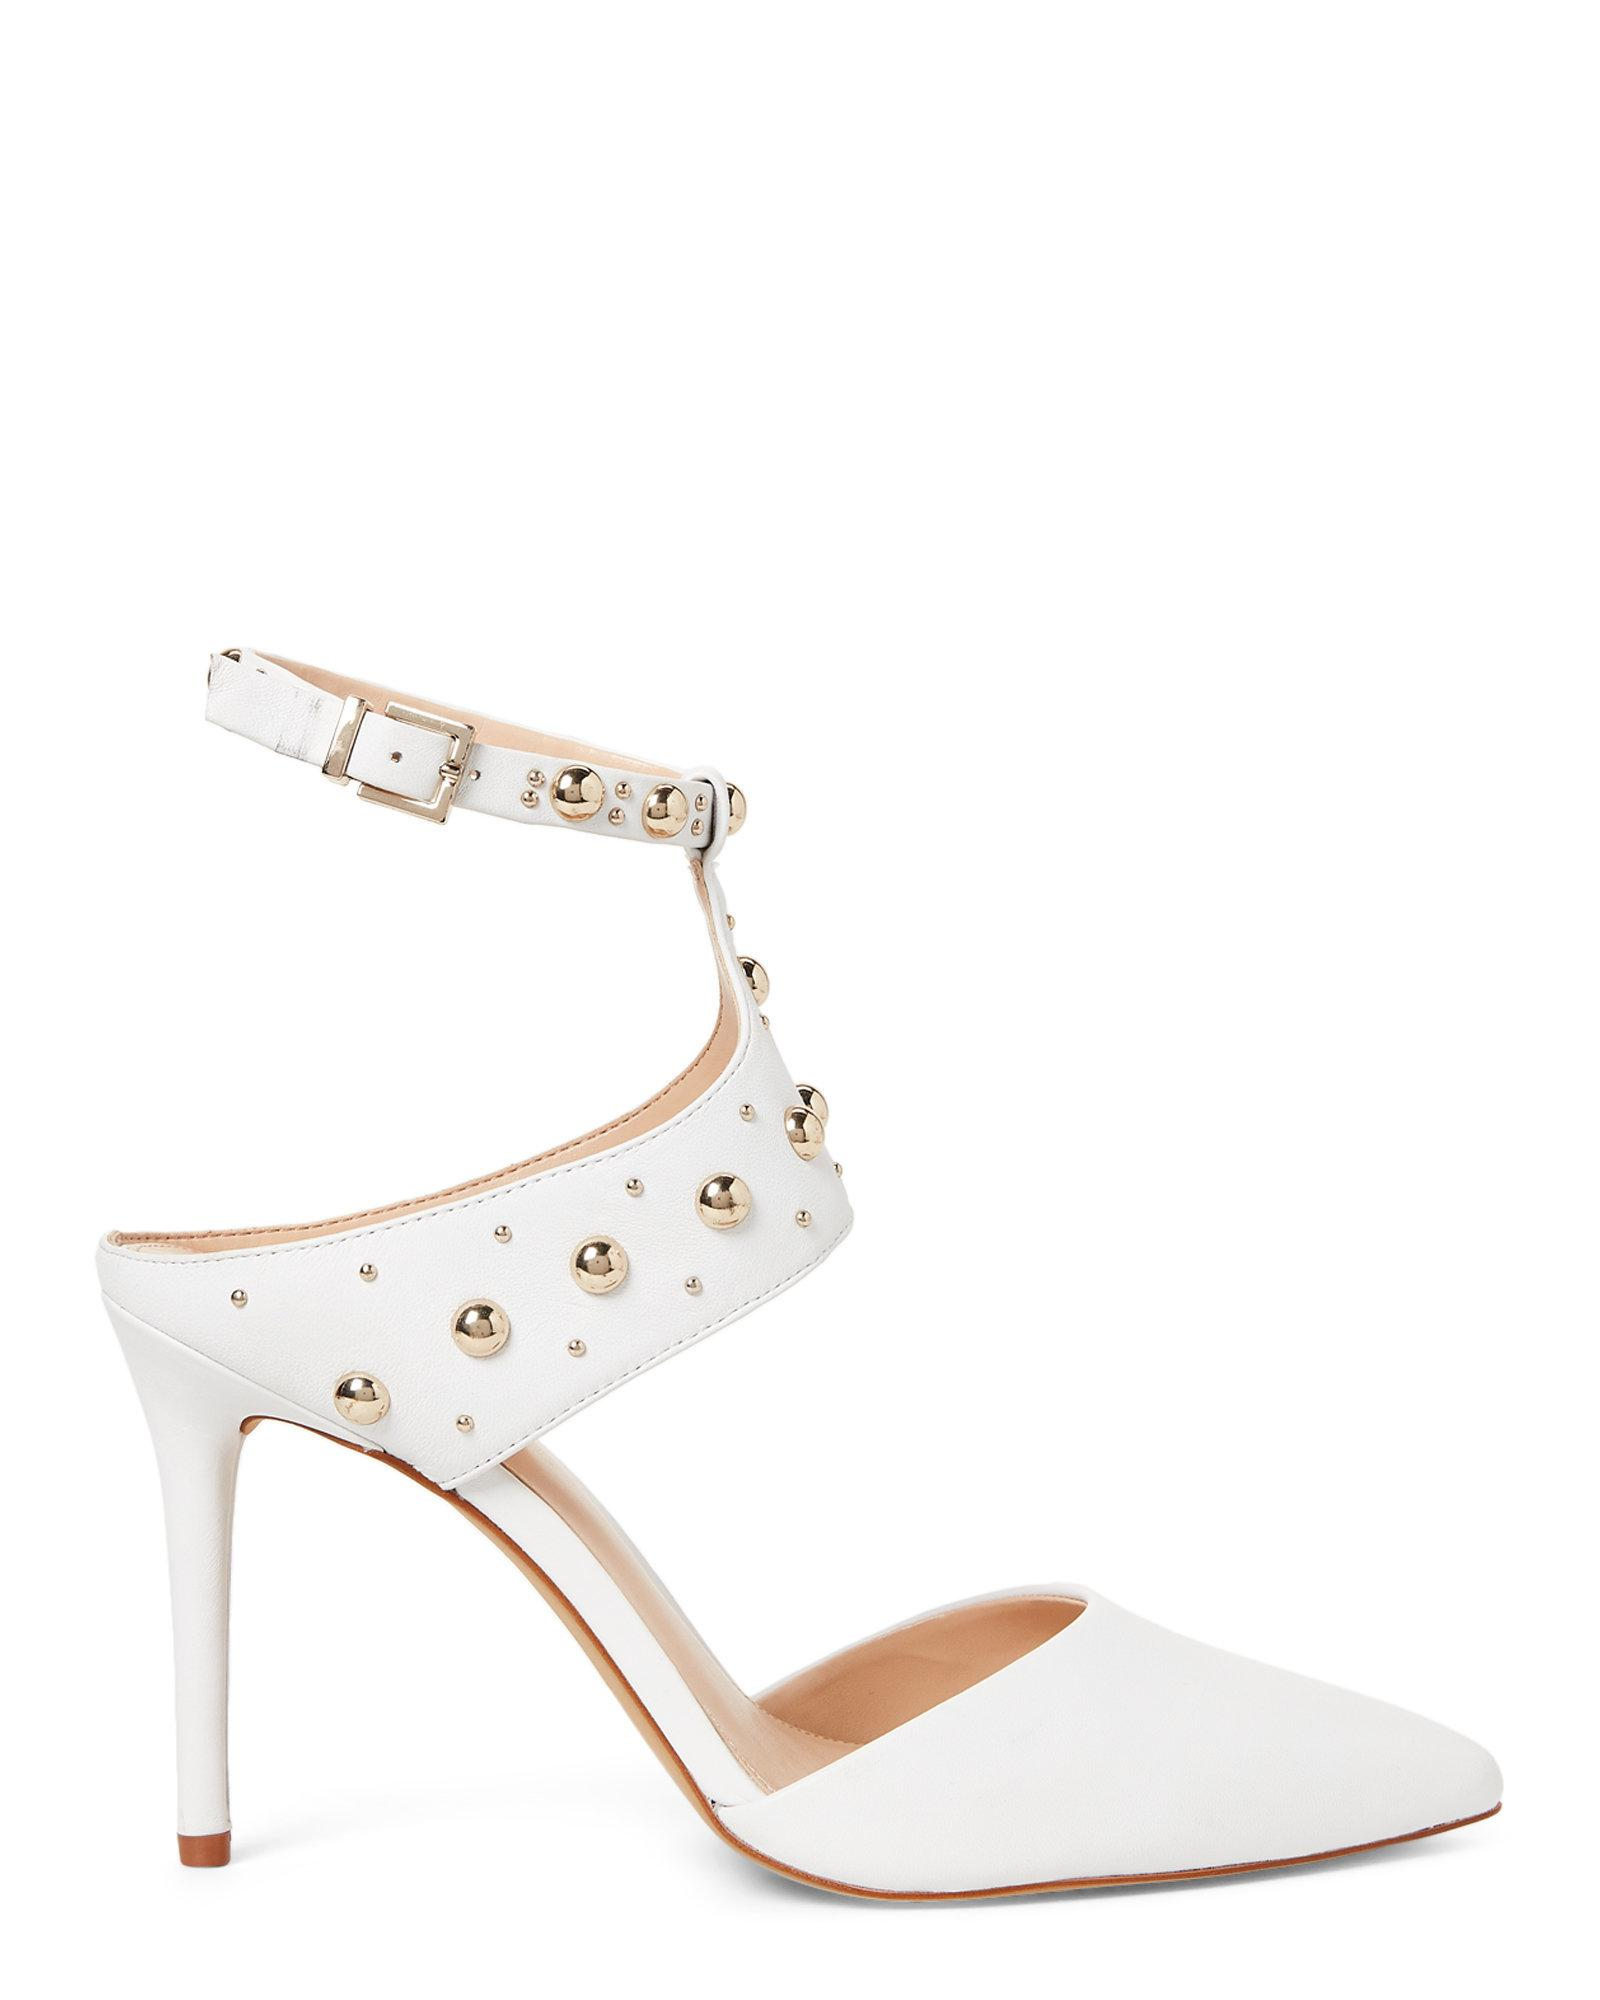 32fb99b78d1 Lyst - Vince Camuto Pure White Ledana Studded Cutout Pump in White